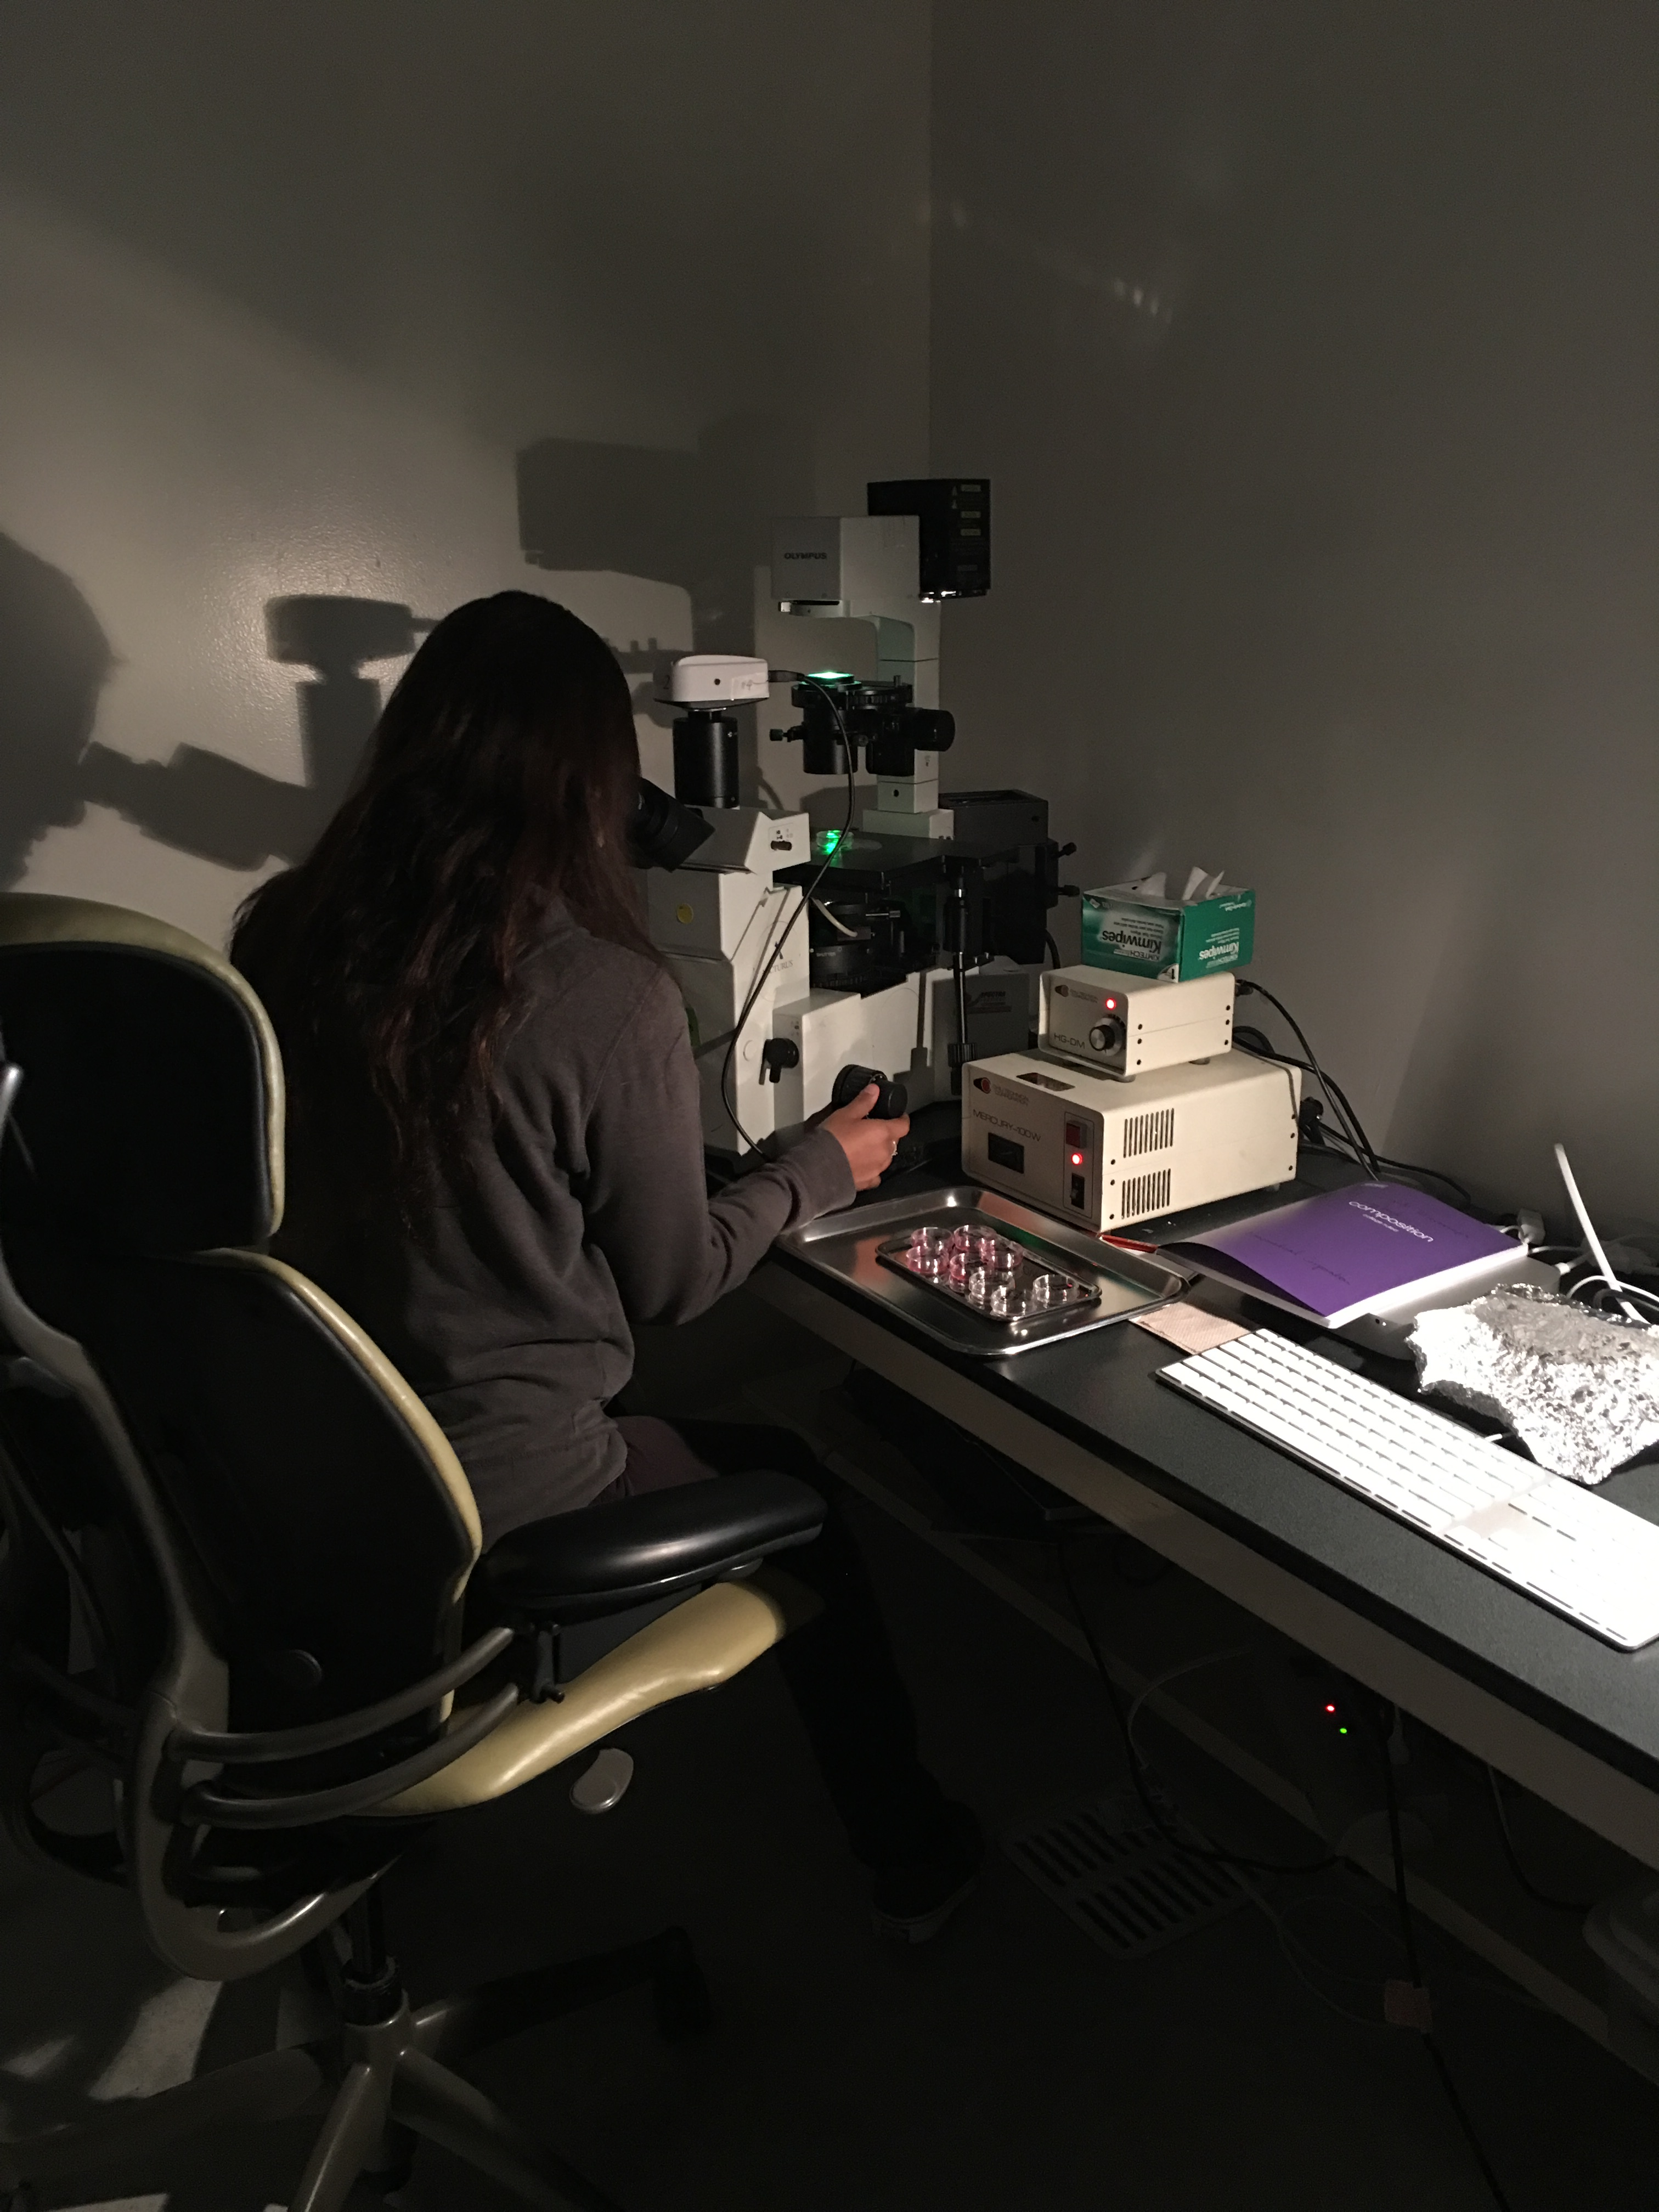 Summer Program - Bio Technology | Intro to Stem Cell Systems